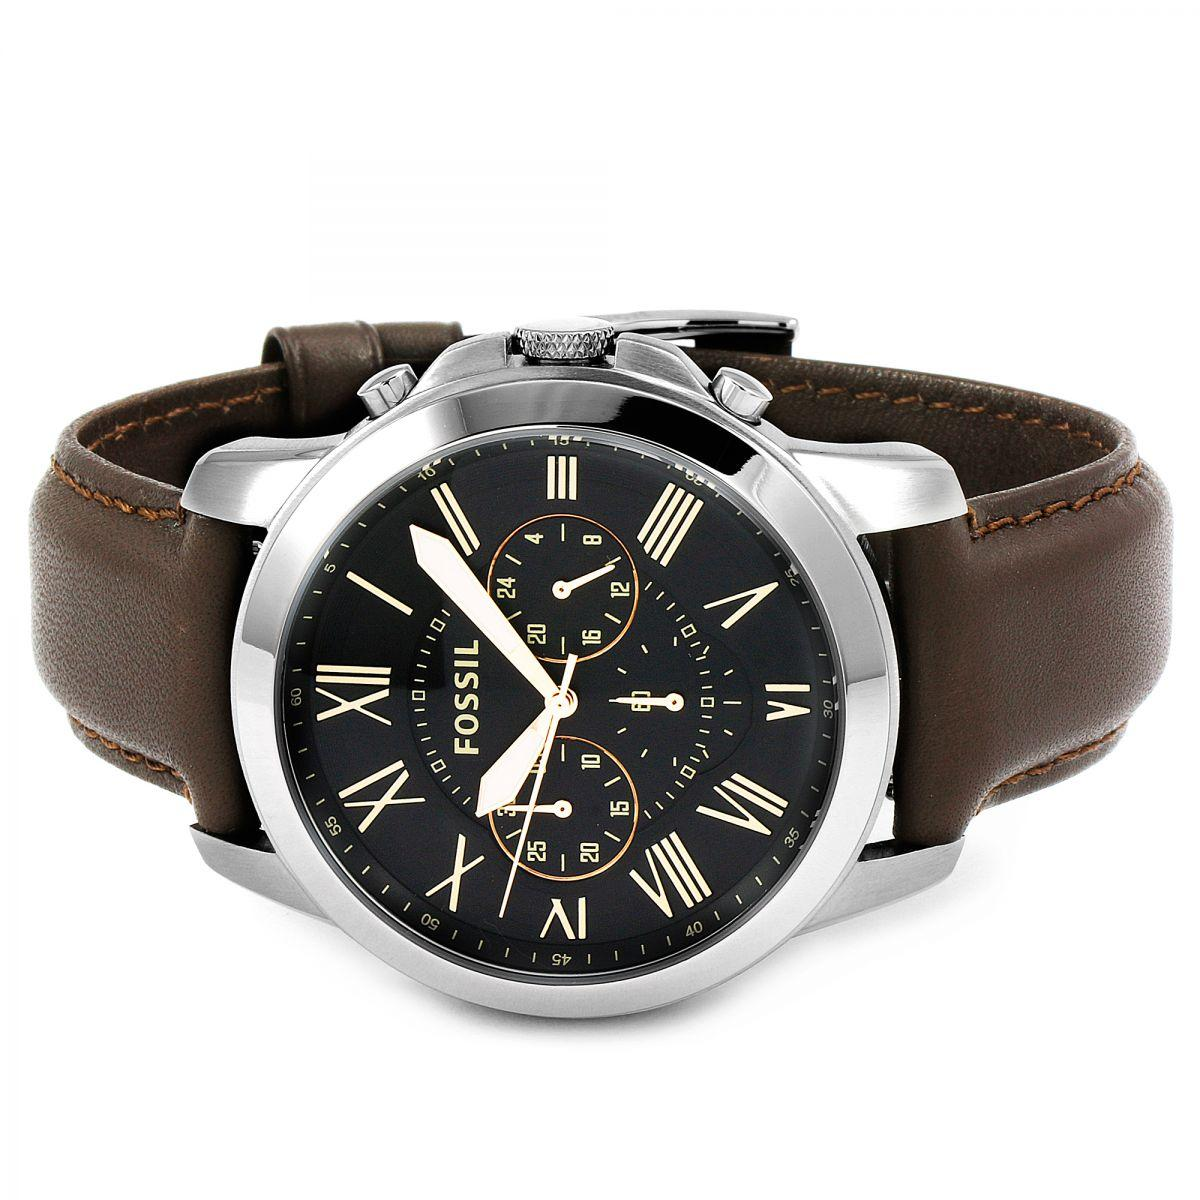 Fossil Philippines Watches For Sale Prices Reviews Lazada Jam Tangan Original Jr1354 Nate Chronograph Black Leather Grant Dial Brown Mens Watch